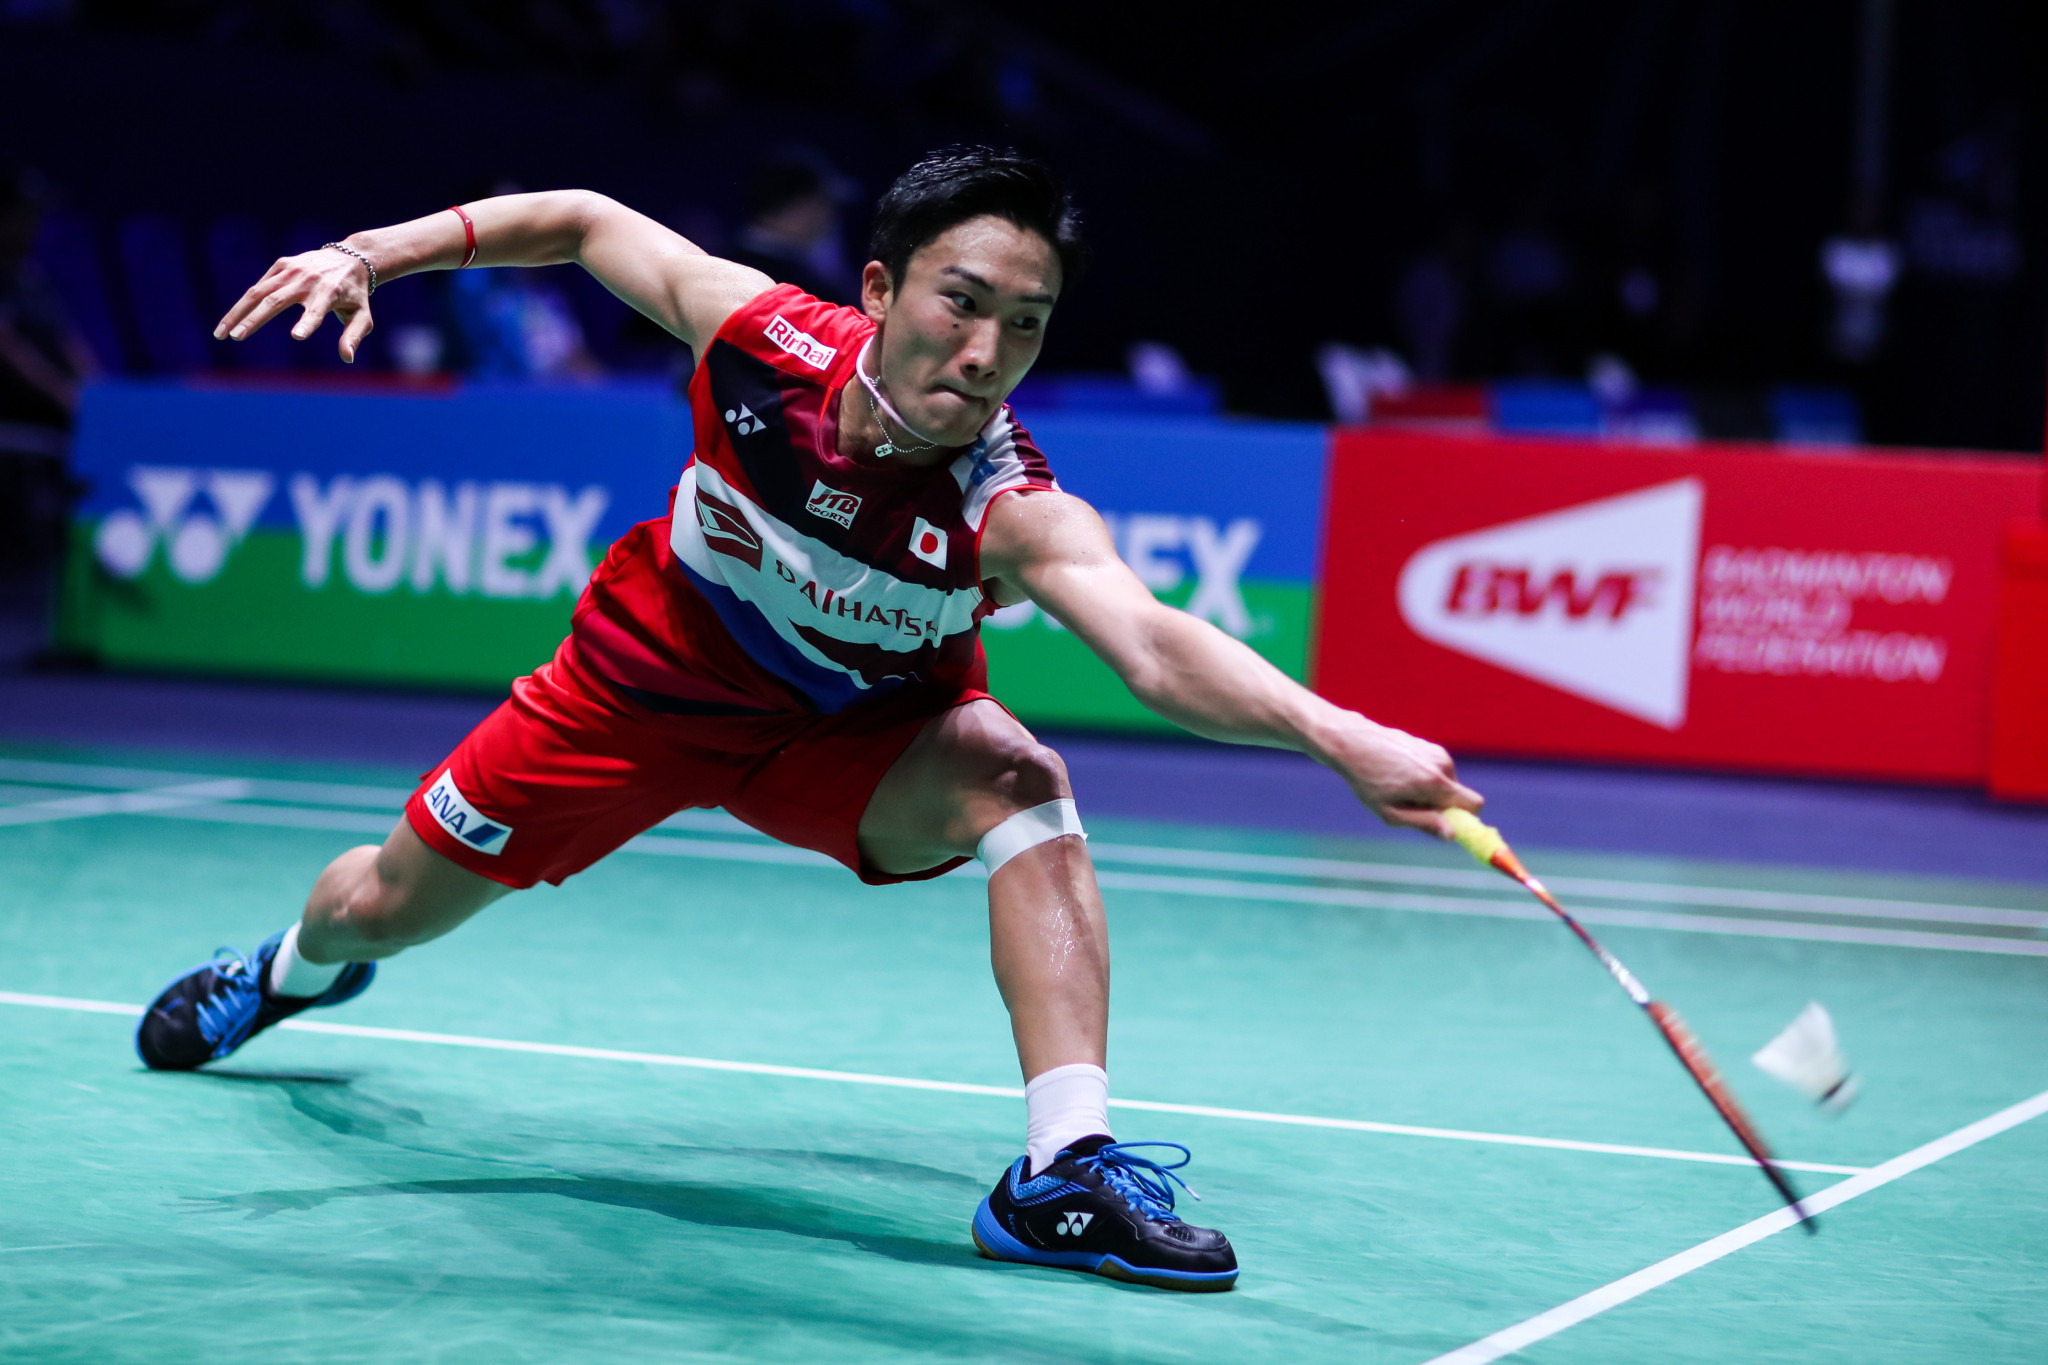 Kento Momota suffered defeat in his quarter-final match ©Getty Images